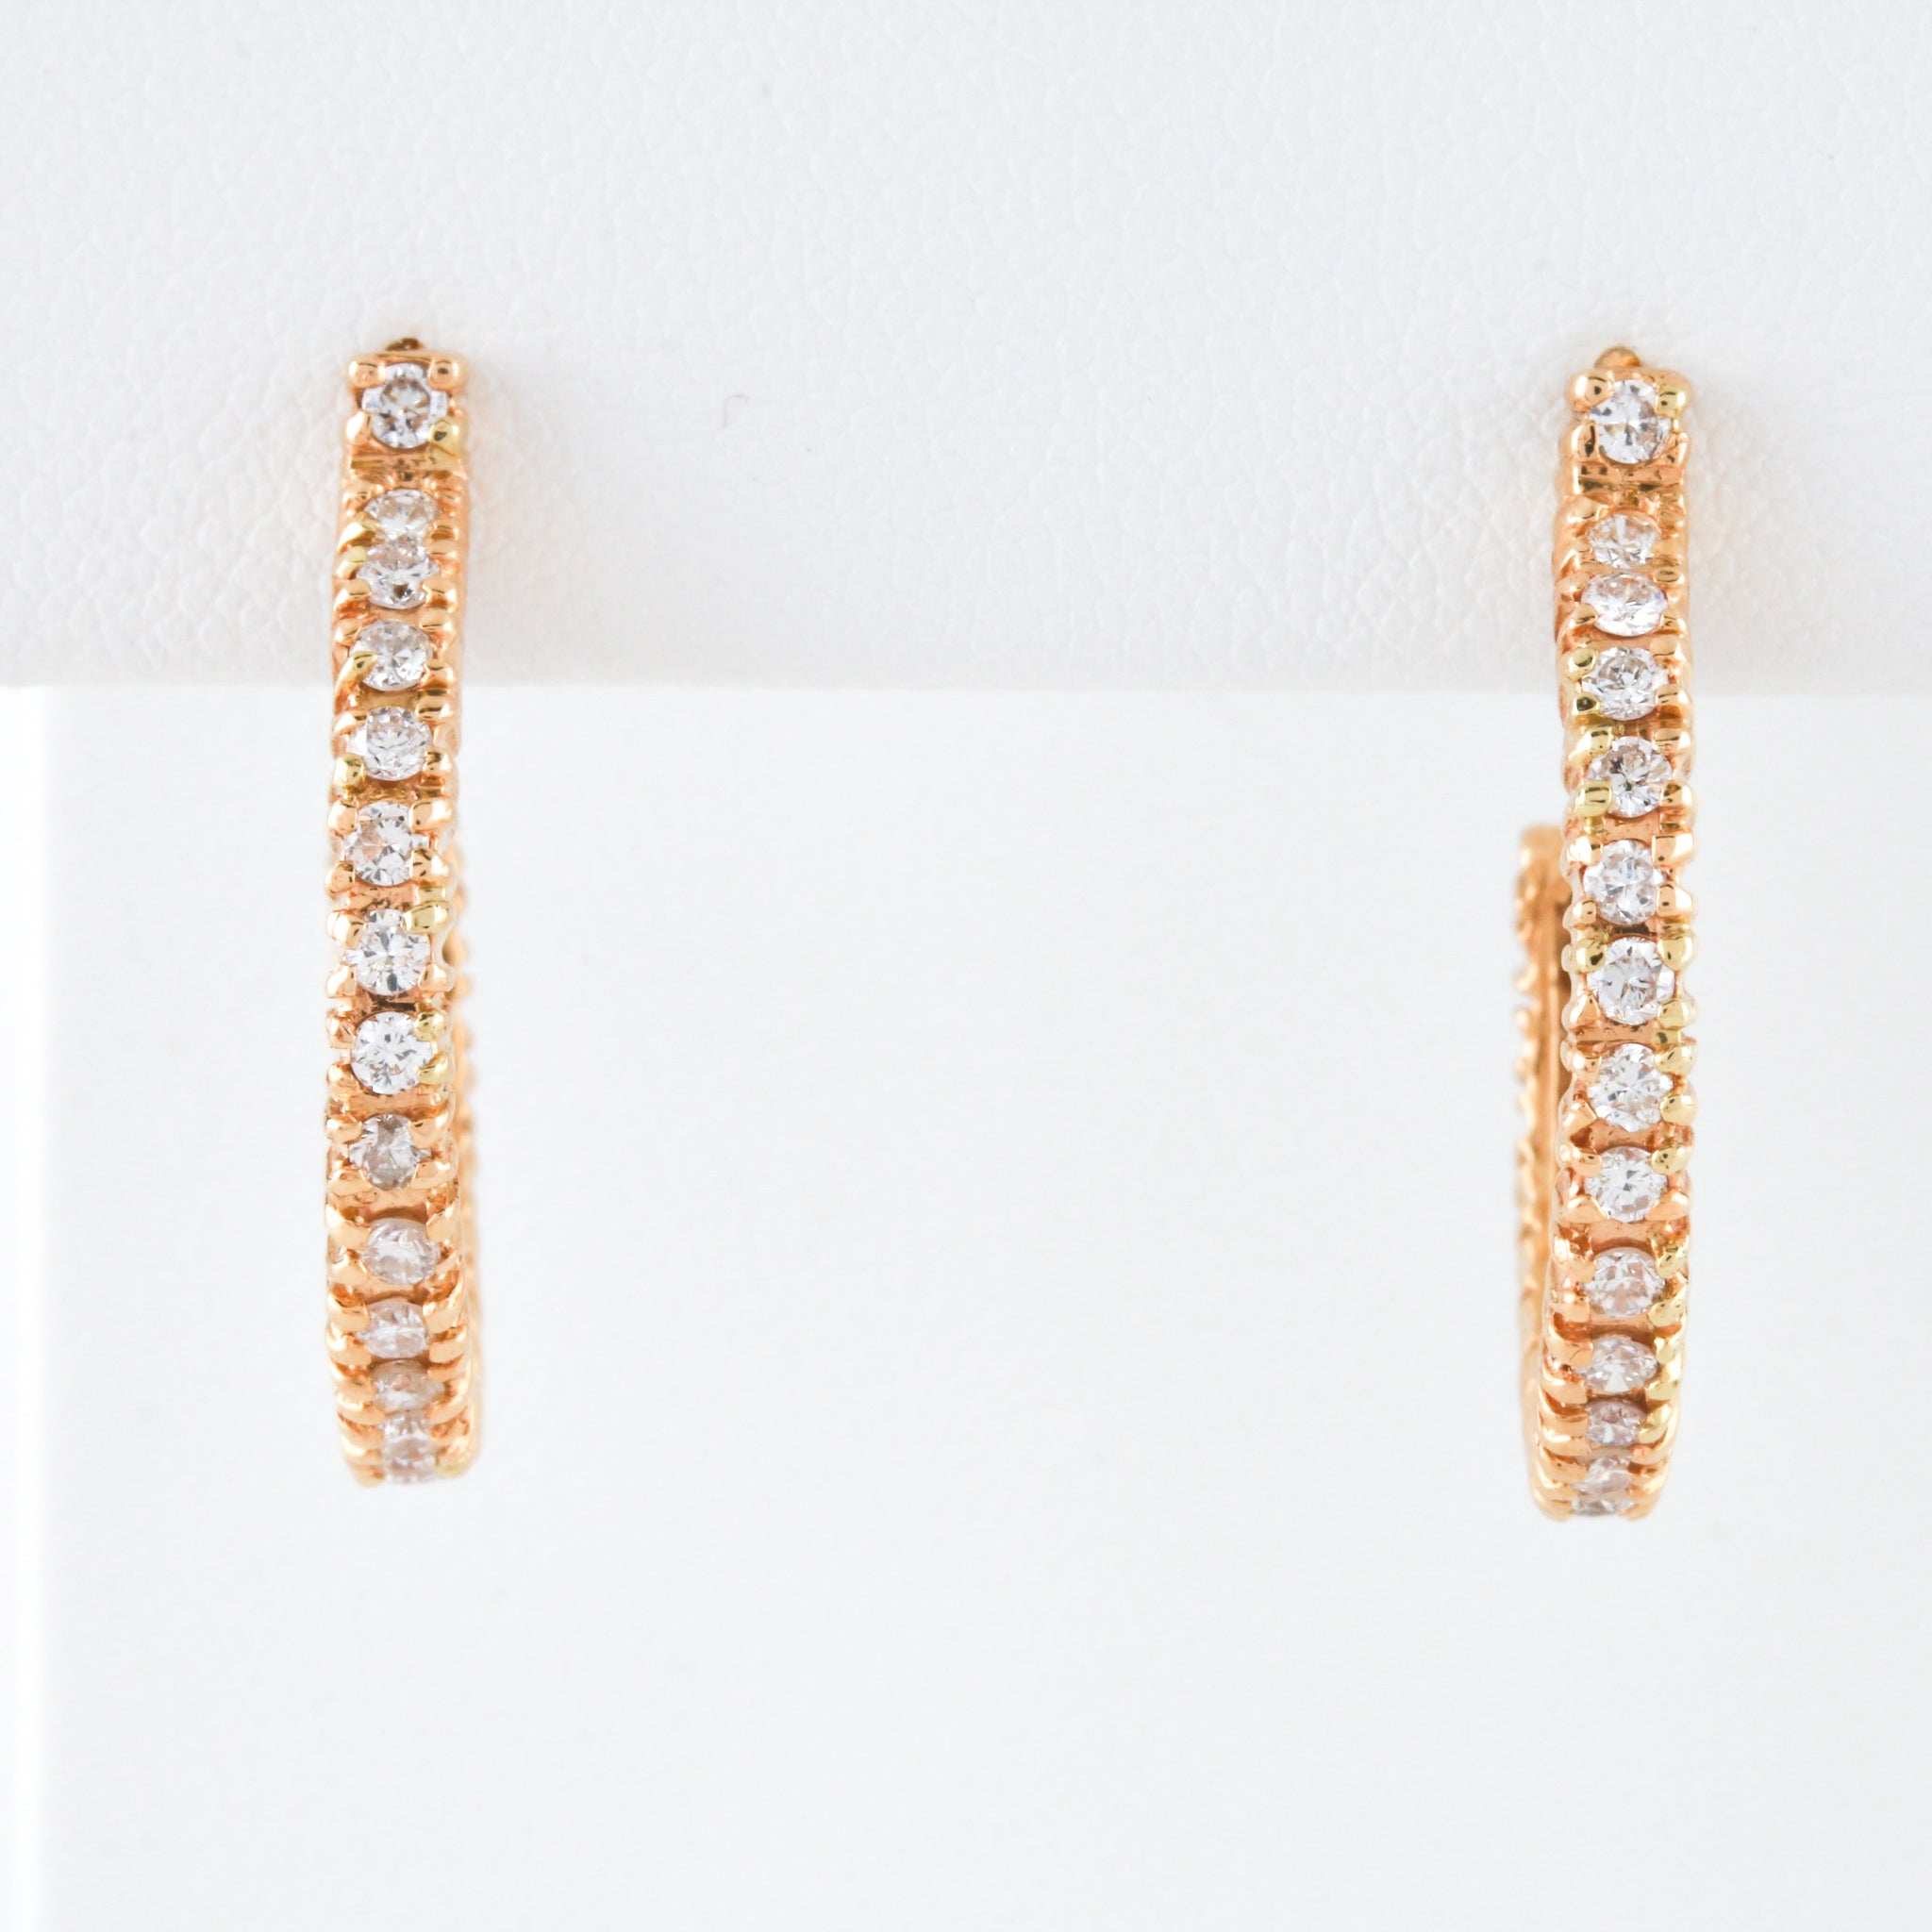 Round Diamonds in Yellow Gold Hoop Earrings